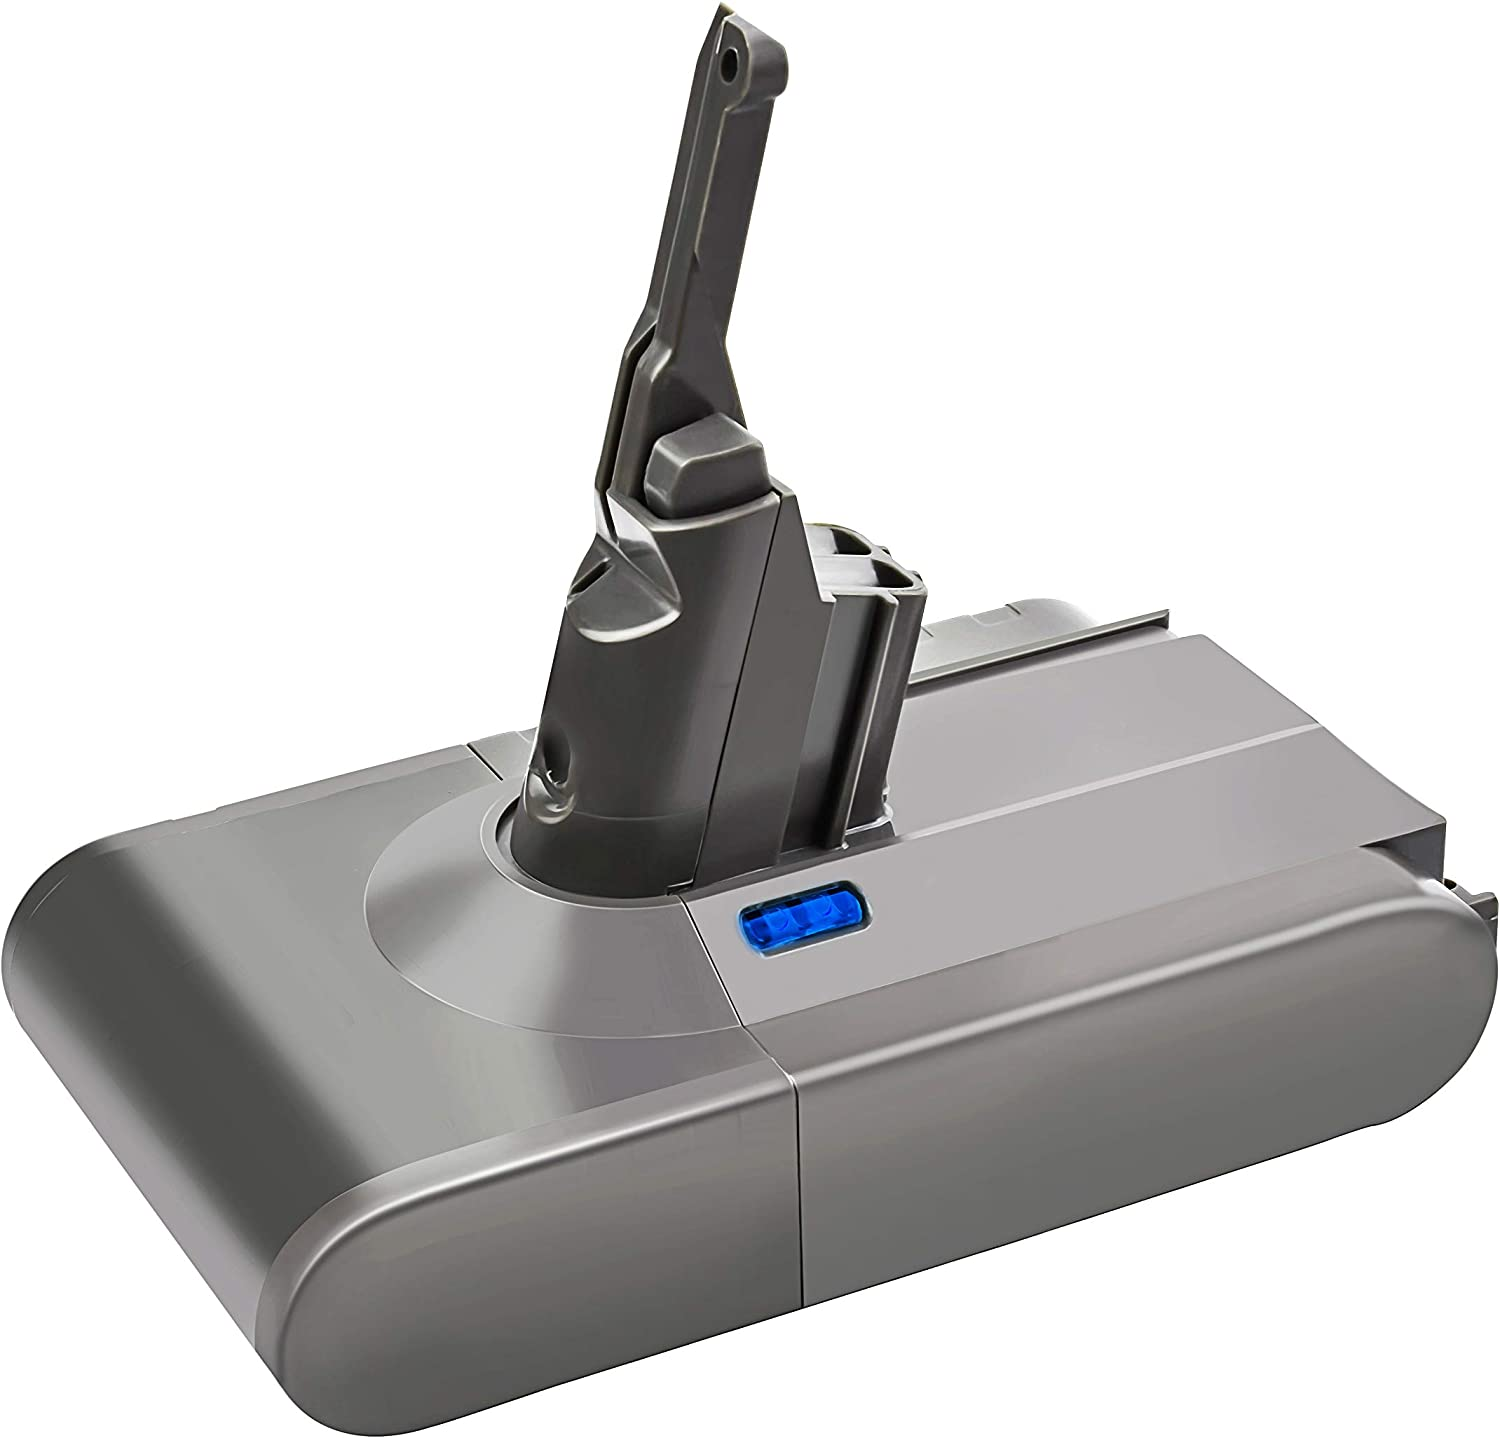 V8 Fashion 4000mAh Lithium Replacement Outlet sale feature for Battery 21.6V Absolute Dyson